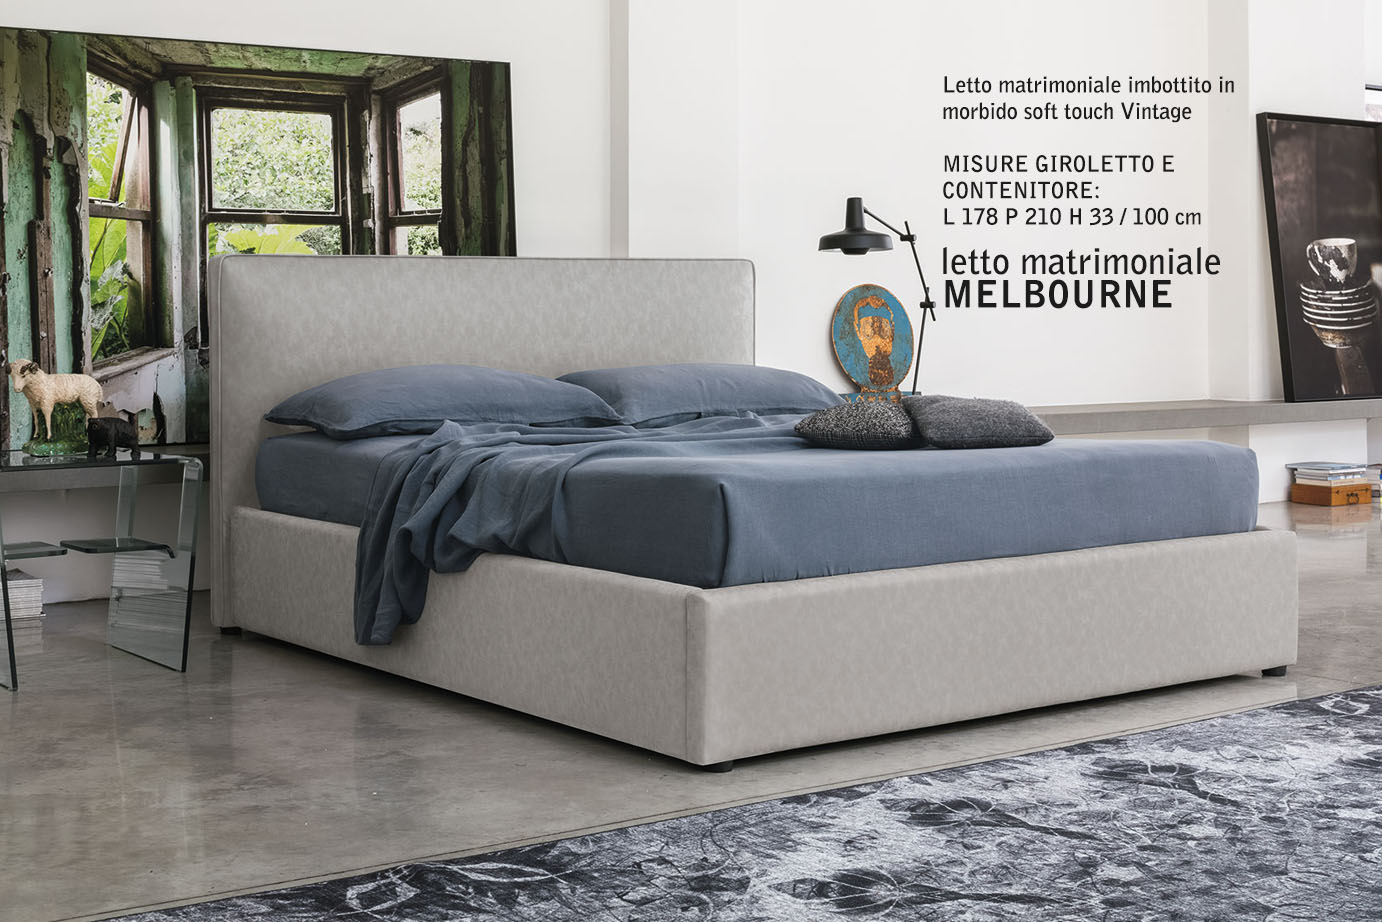 Giroletto Matrimoniale.Melbourne Double Bed Target Point